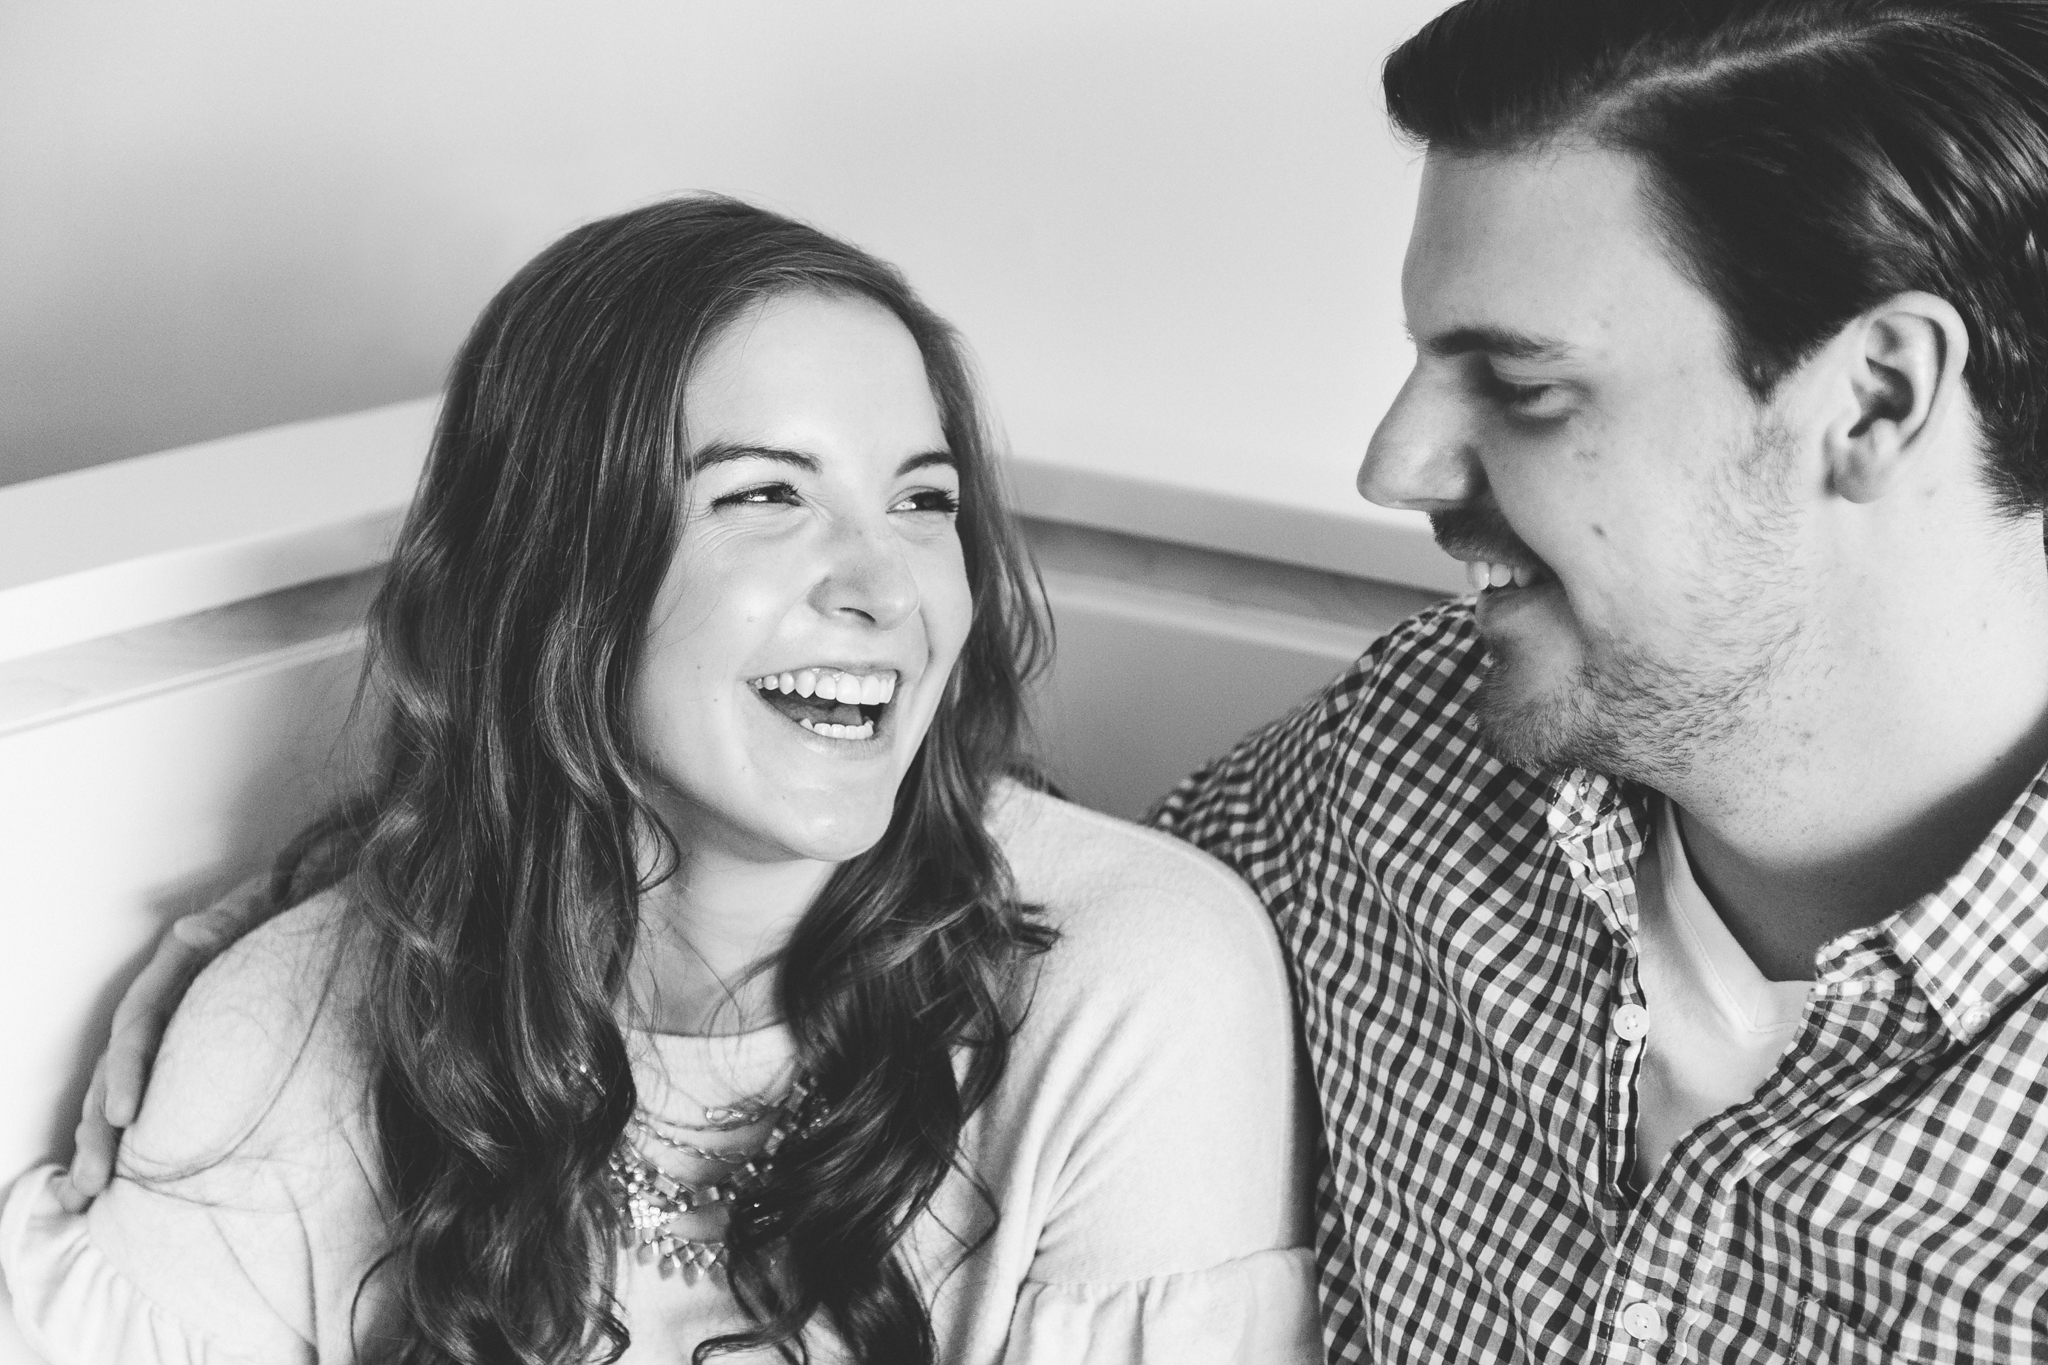 lethbridge-photographer-love-and-be-loved-photography-jonny-bean-coffee-shop-emma-tanner-engagement-picture-image-photo-15.jpg